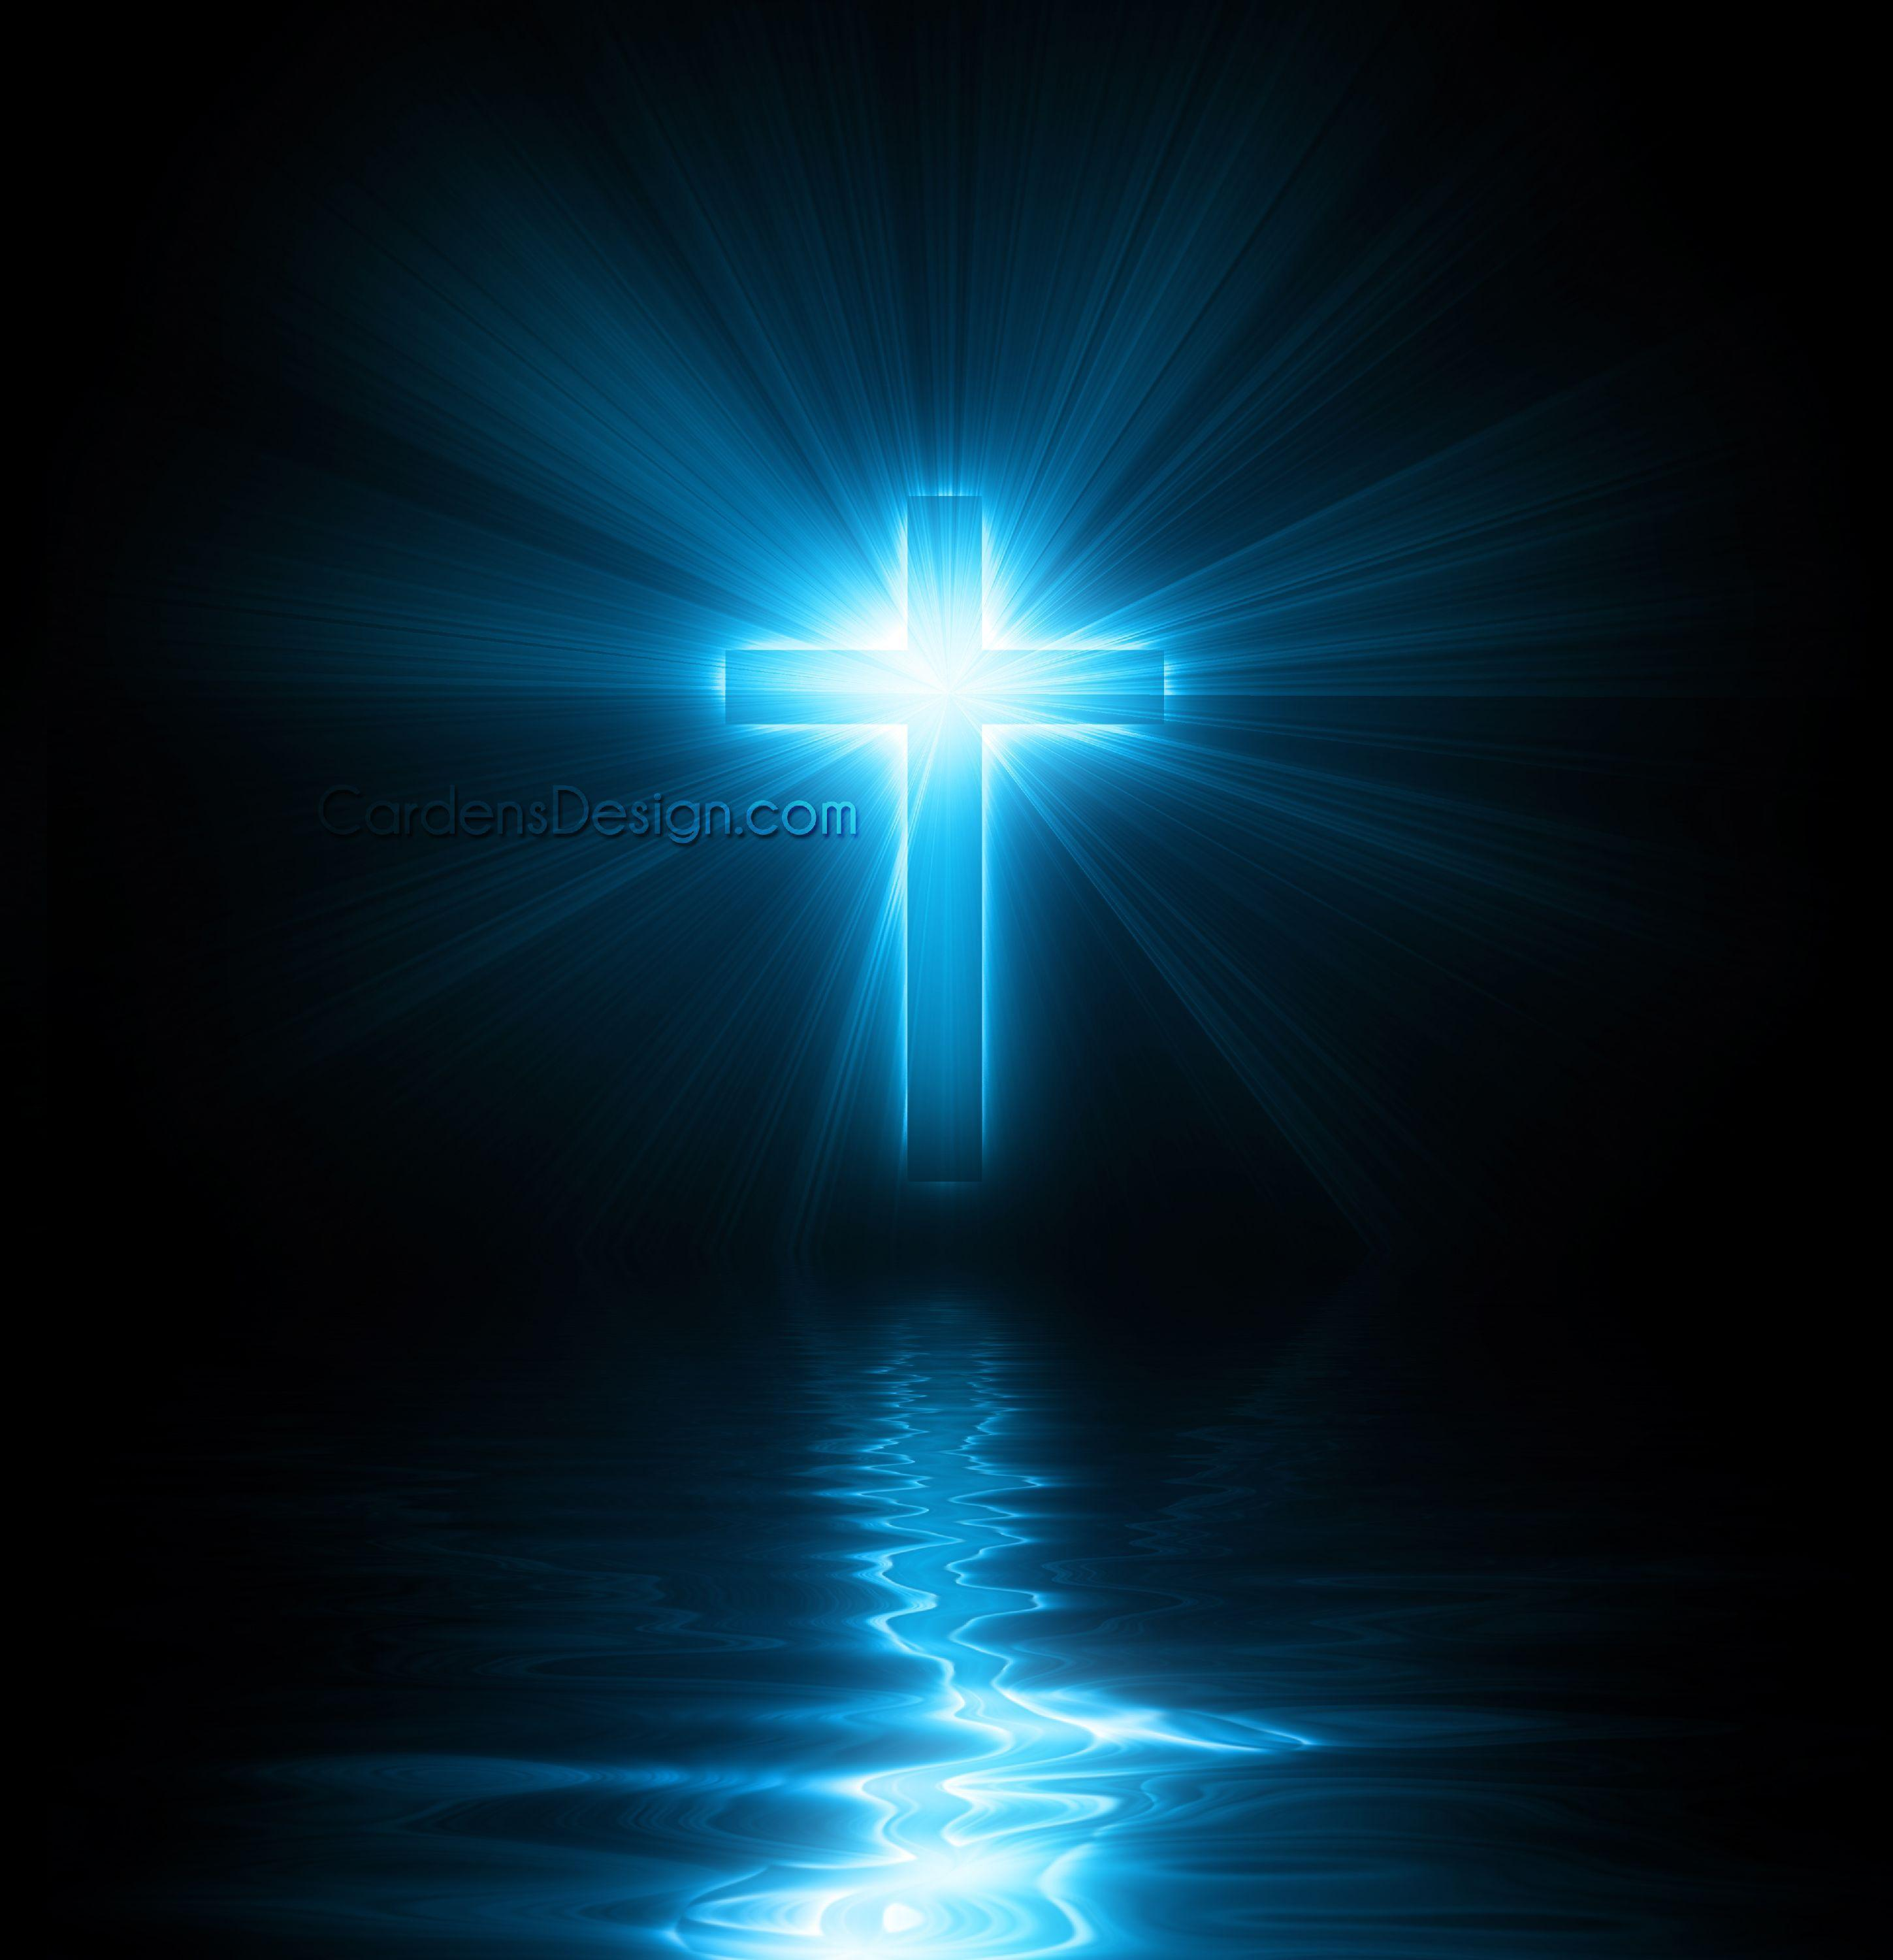 Cross Image With Backgrounds - Wallpaper Cave